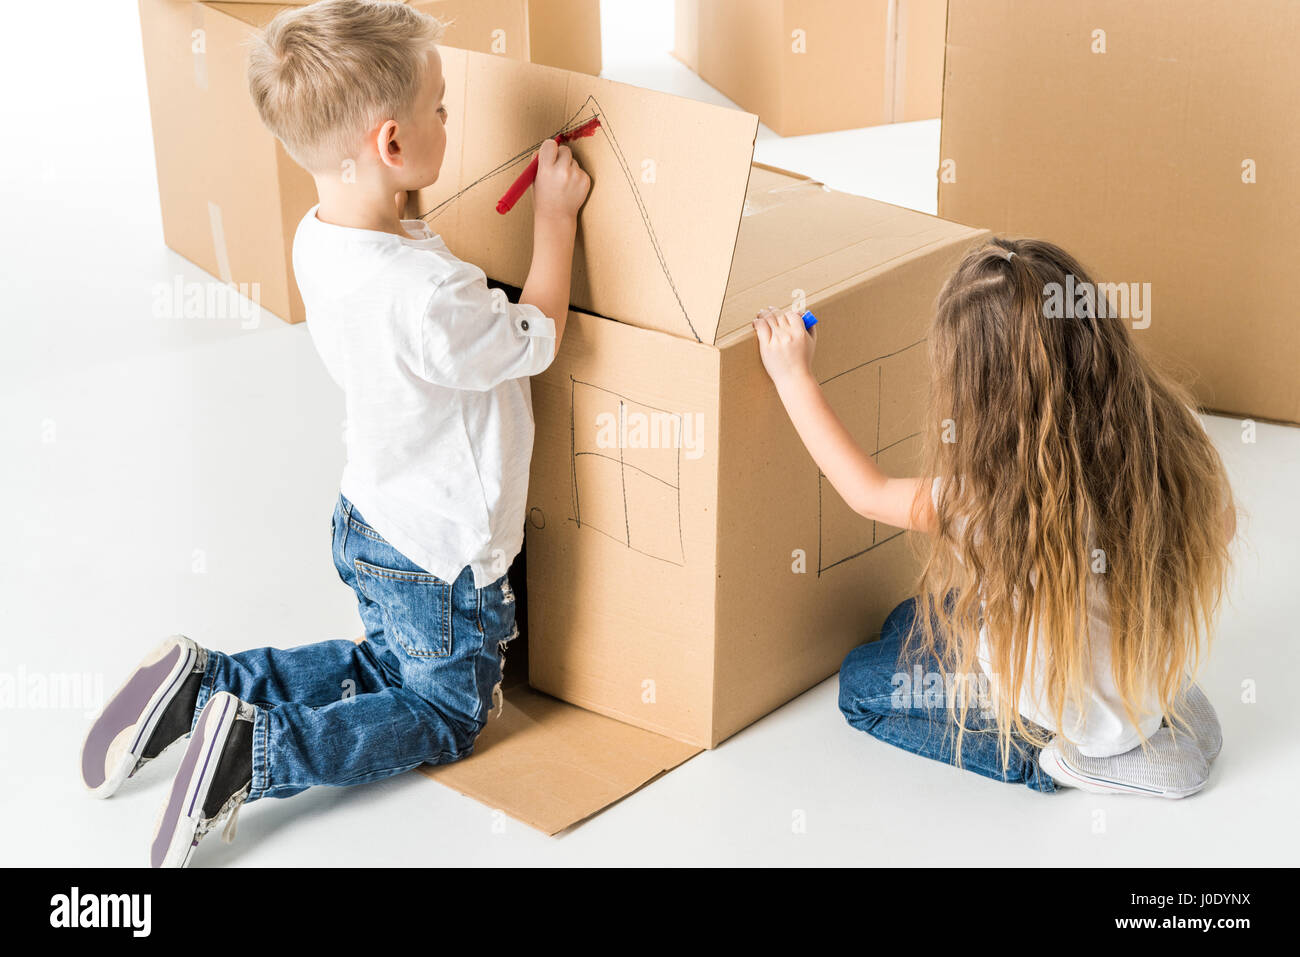 Cute little boy and girl drawing house on cardboard box - Stock Image